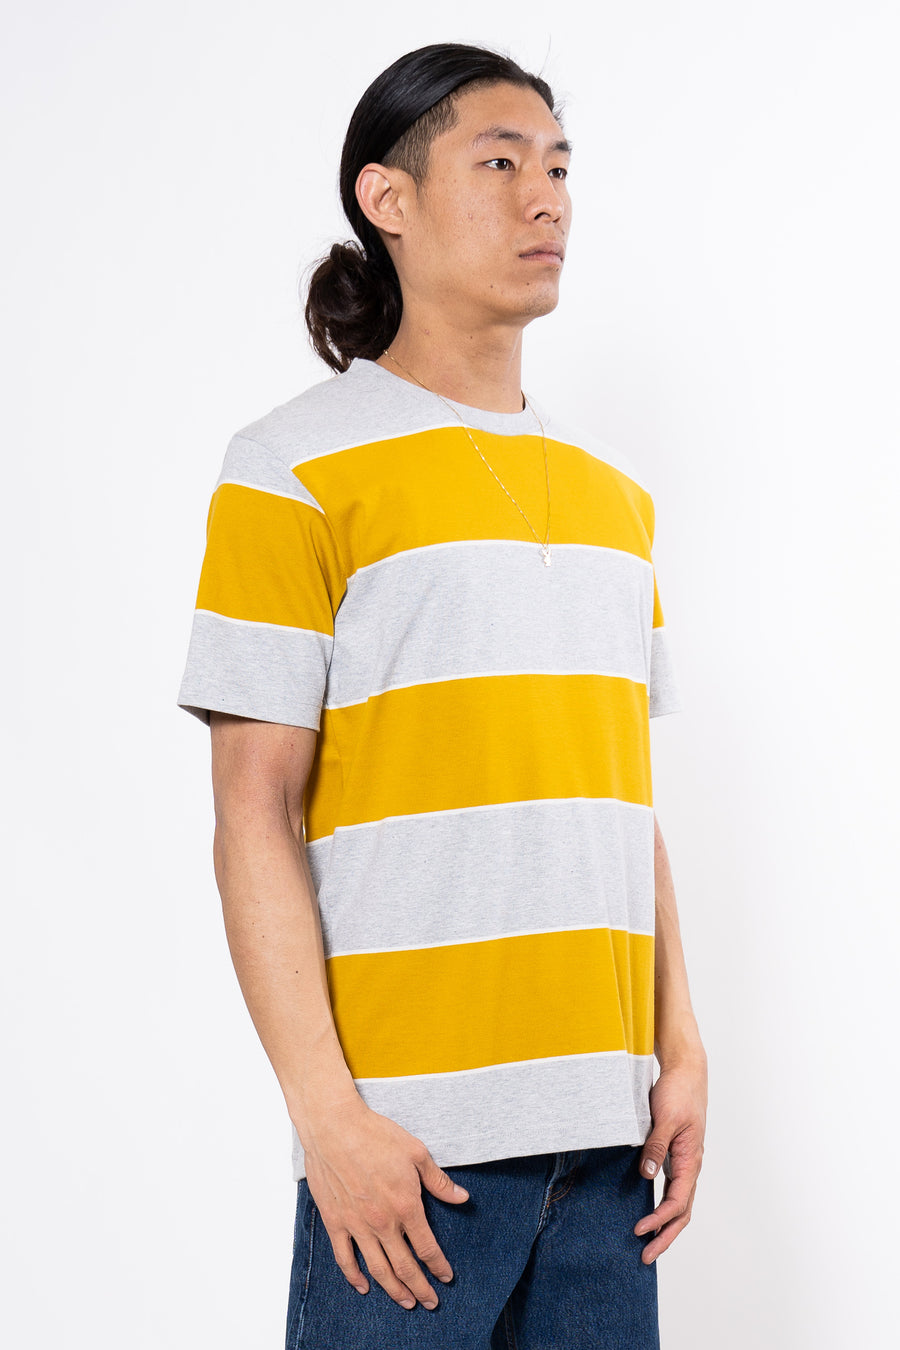 NORSE PROJECTS Johannes 3 Stripe T-Stripe Montpellier Yellow | HAVN